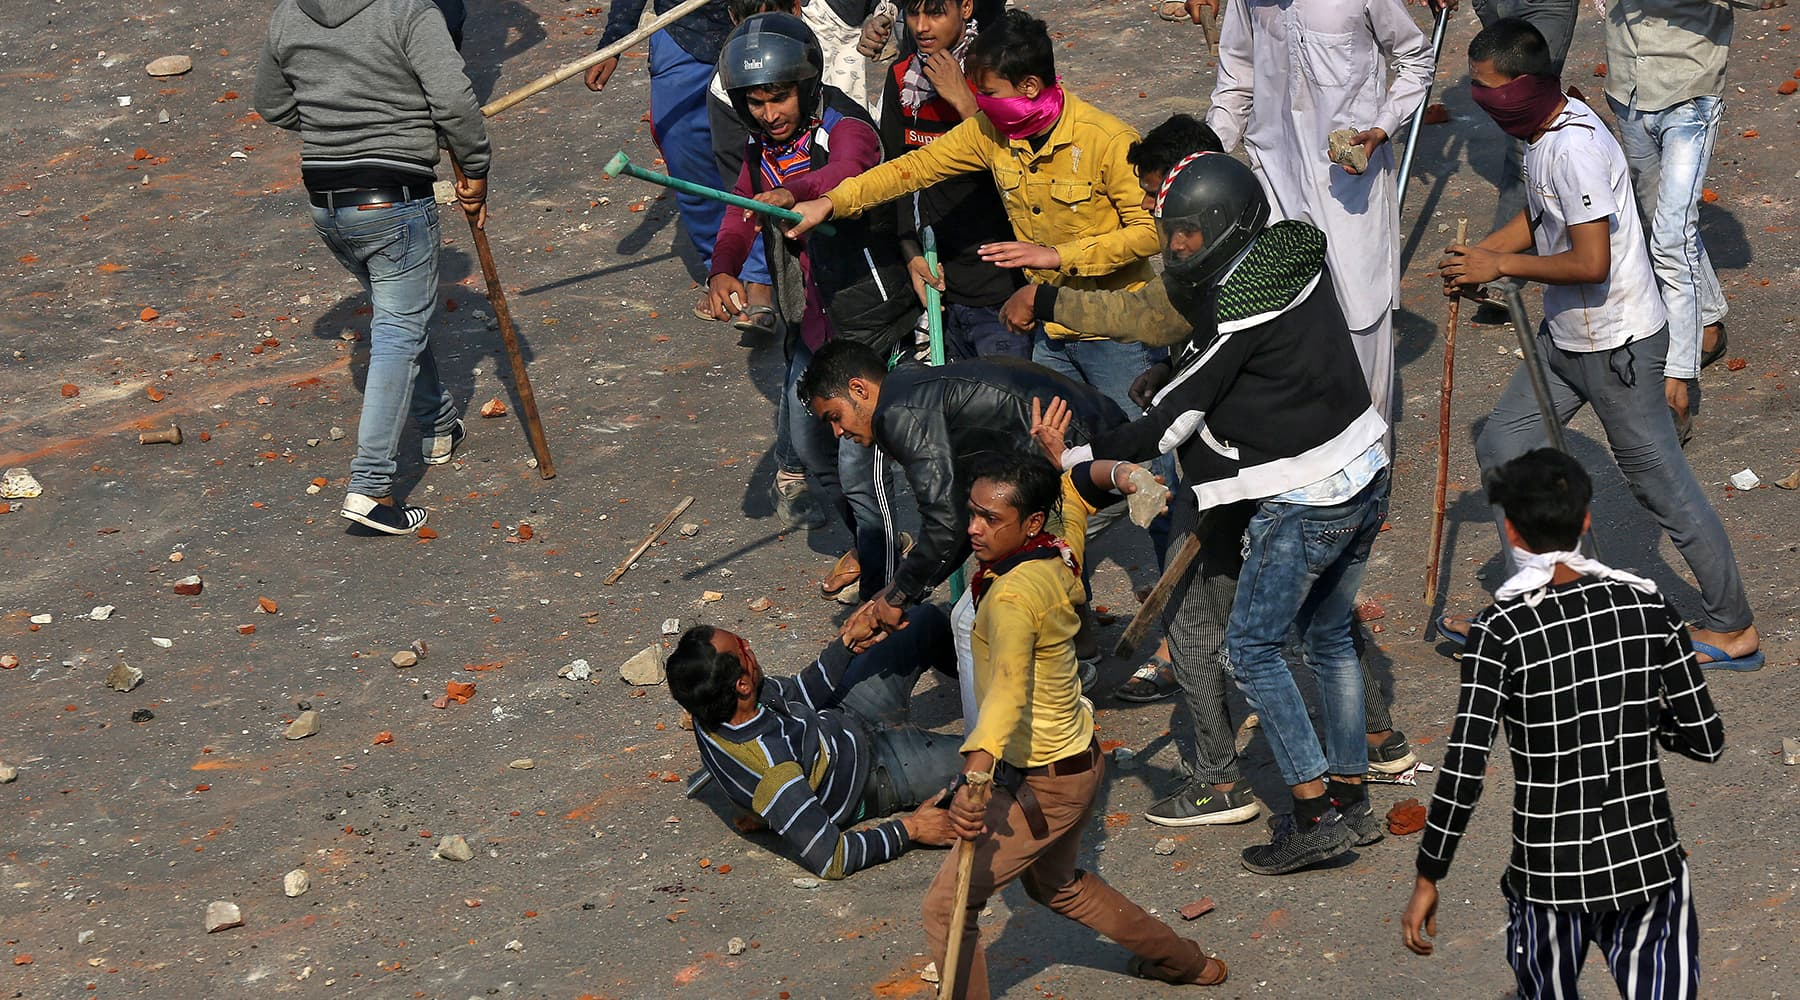 A man is beaten during a clash between people supporting a new citizenship law and those opposing the law in New Delhi, India on Feb 24. — Reuters